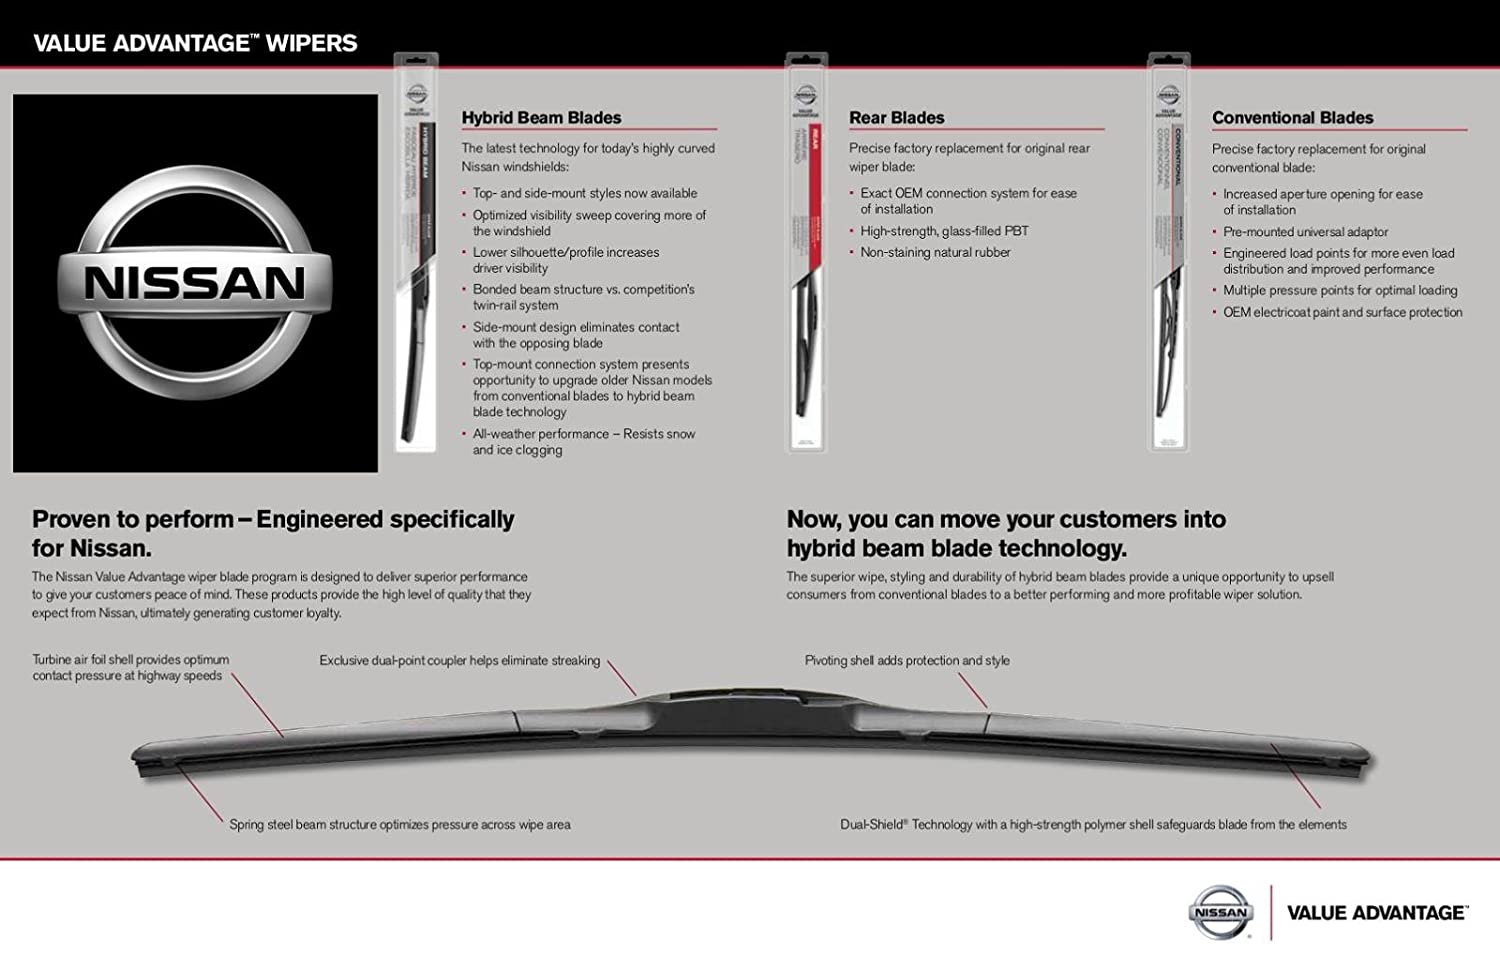 Genuine Nissan OEM VA Wiper Blade Kit - Versa Note (2013-2019)